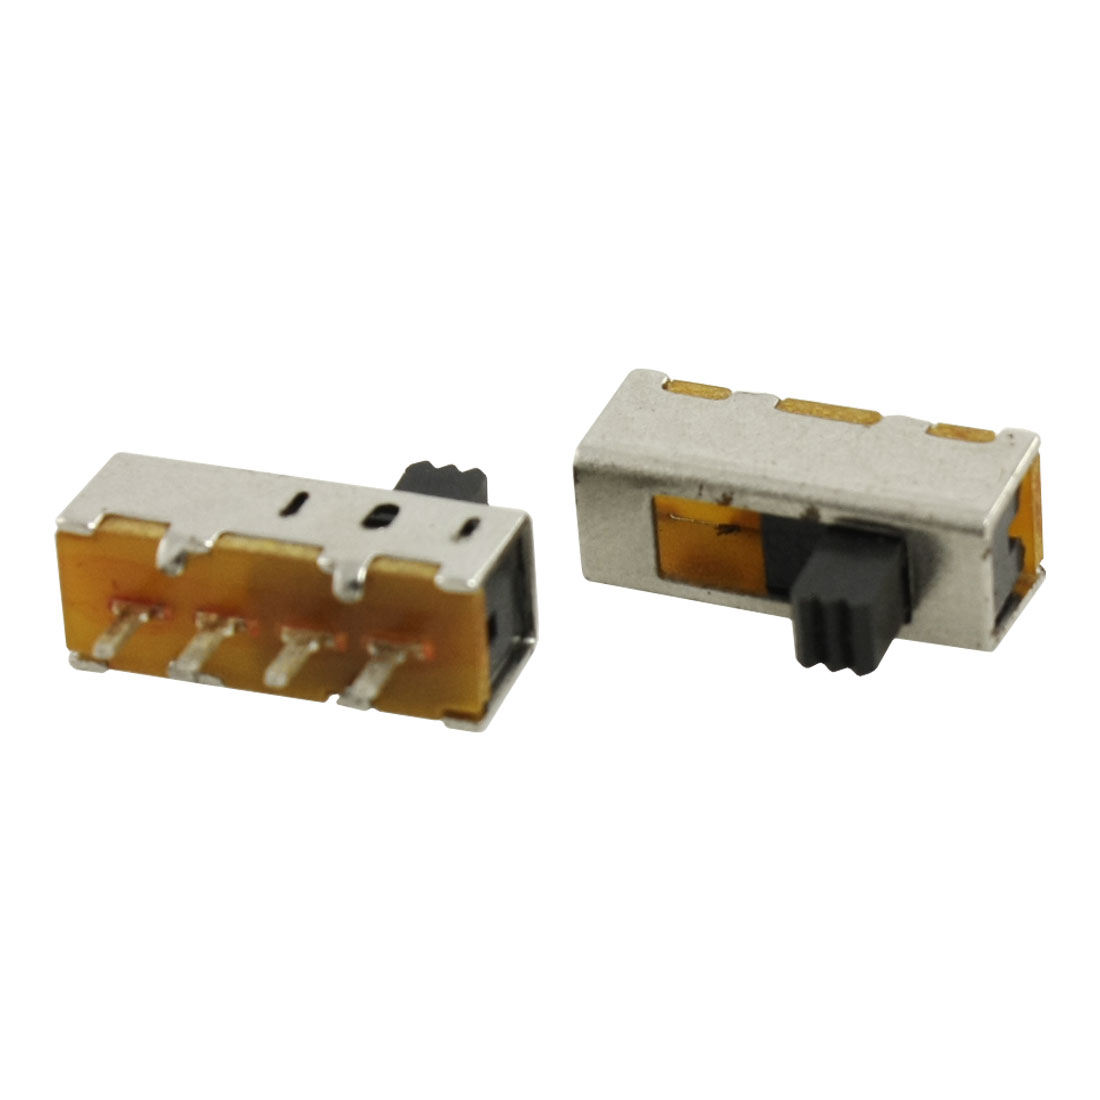 UXCELL 5 Pcs X Pcb 4 Pin OnOnOn 3 Position Sp3t 1P3t Mini Slide Switch 0.5A 50V Easy Structure Body 4 Terminal Vertical Handle